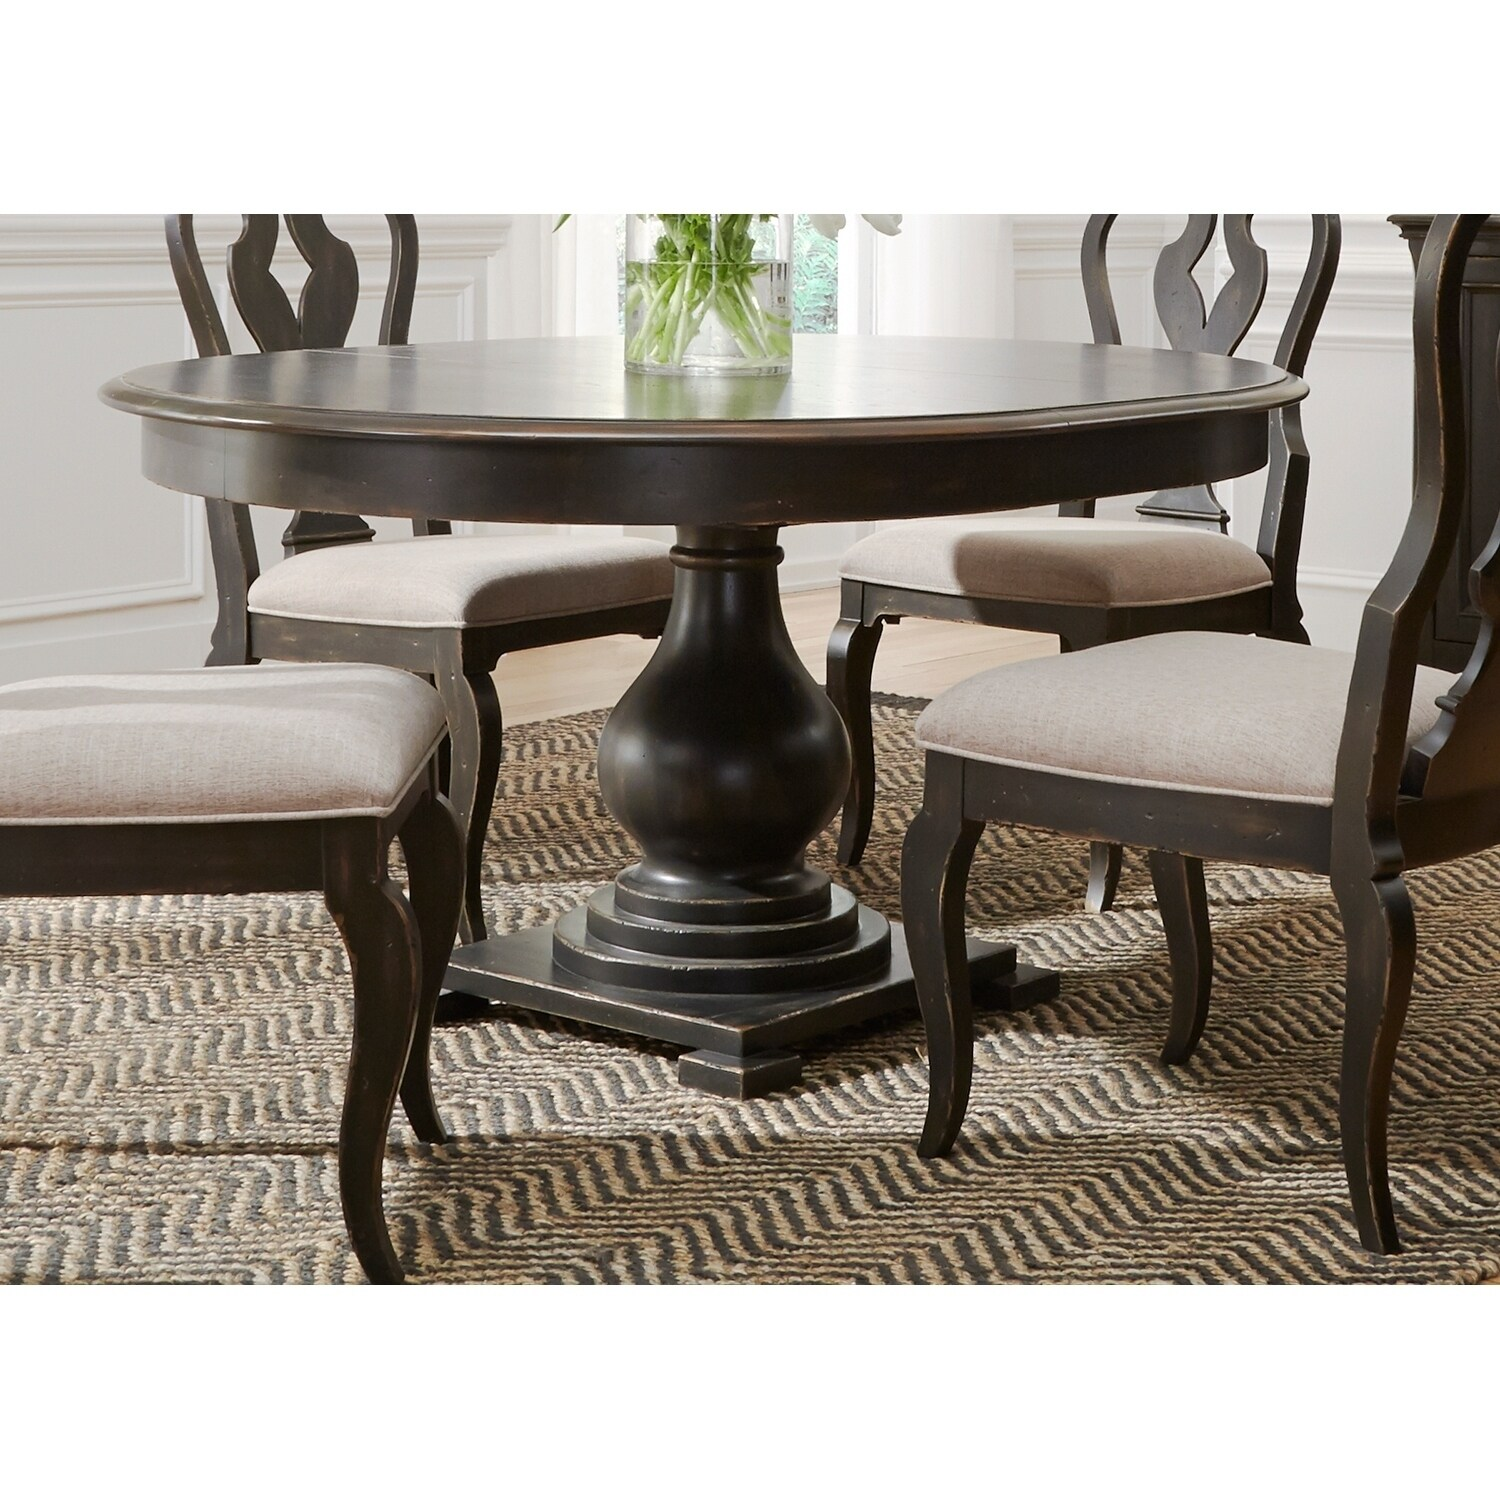 Classic Table Shapes Chesapeake Wire Brushed Antique Black 48x60 Pedestal Dinette Table